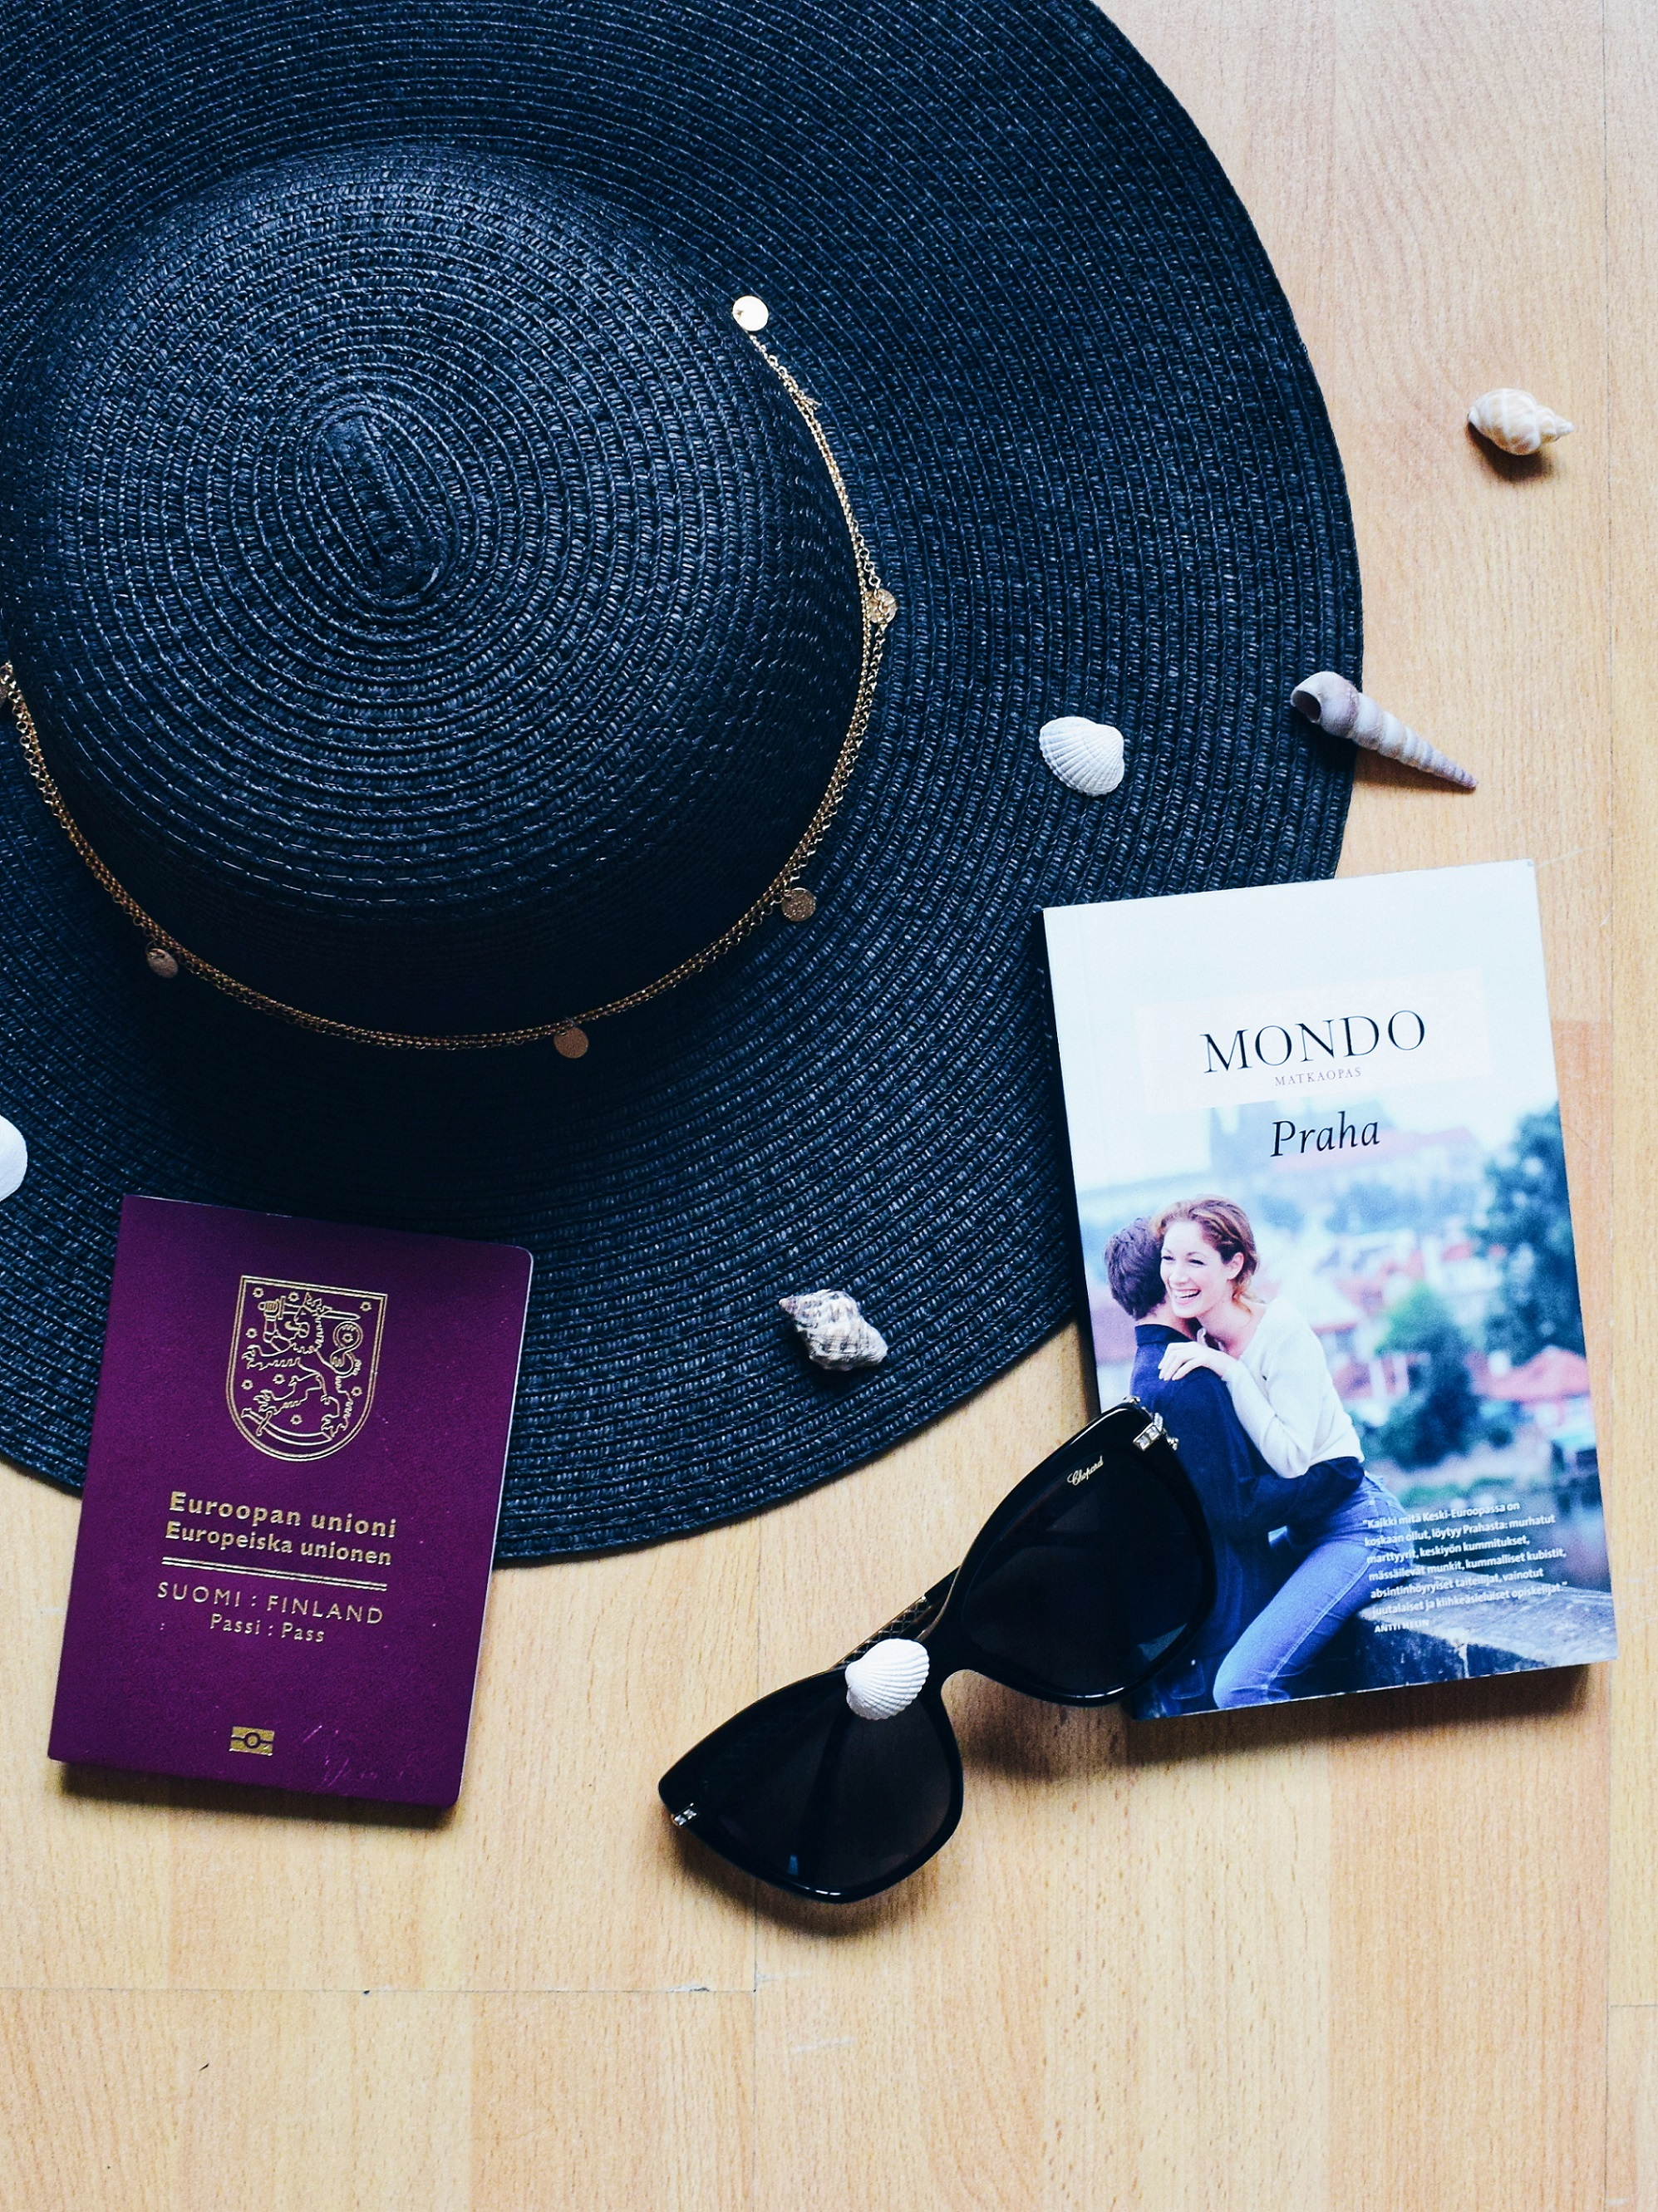 Outlandish blog life travel truth travelling adventure flat lay photography